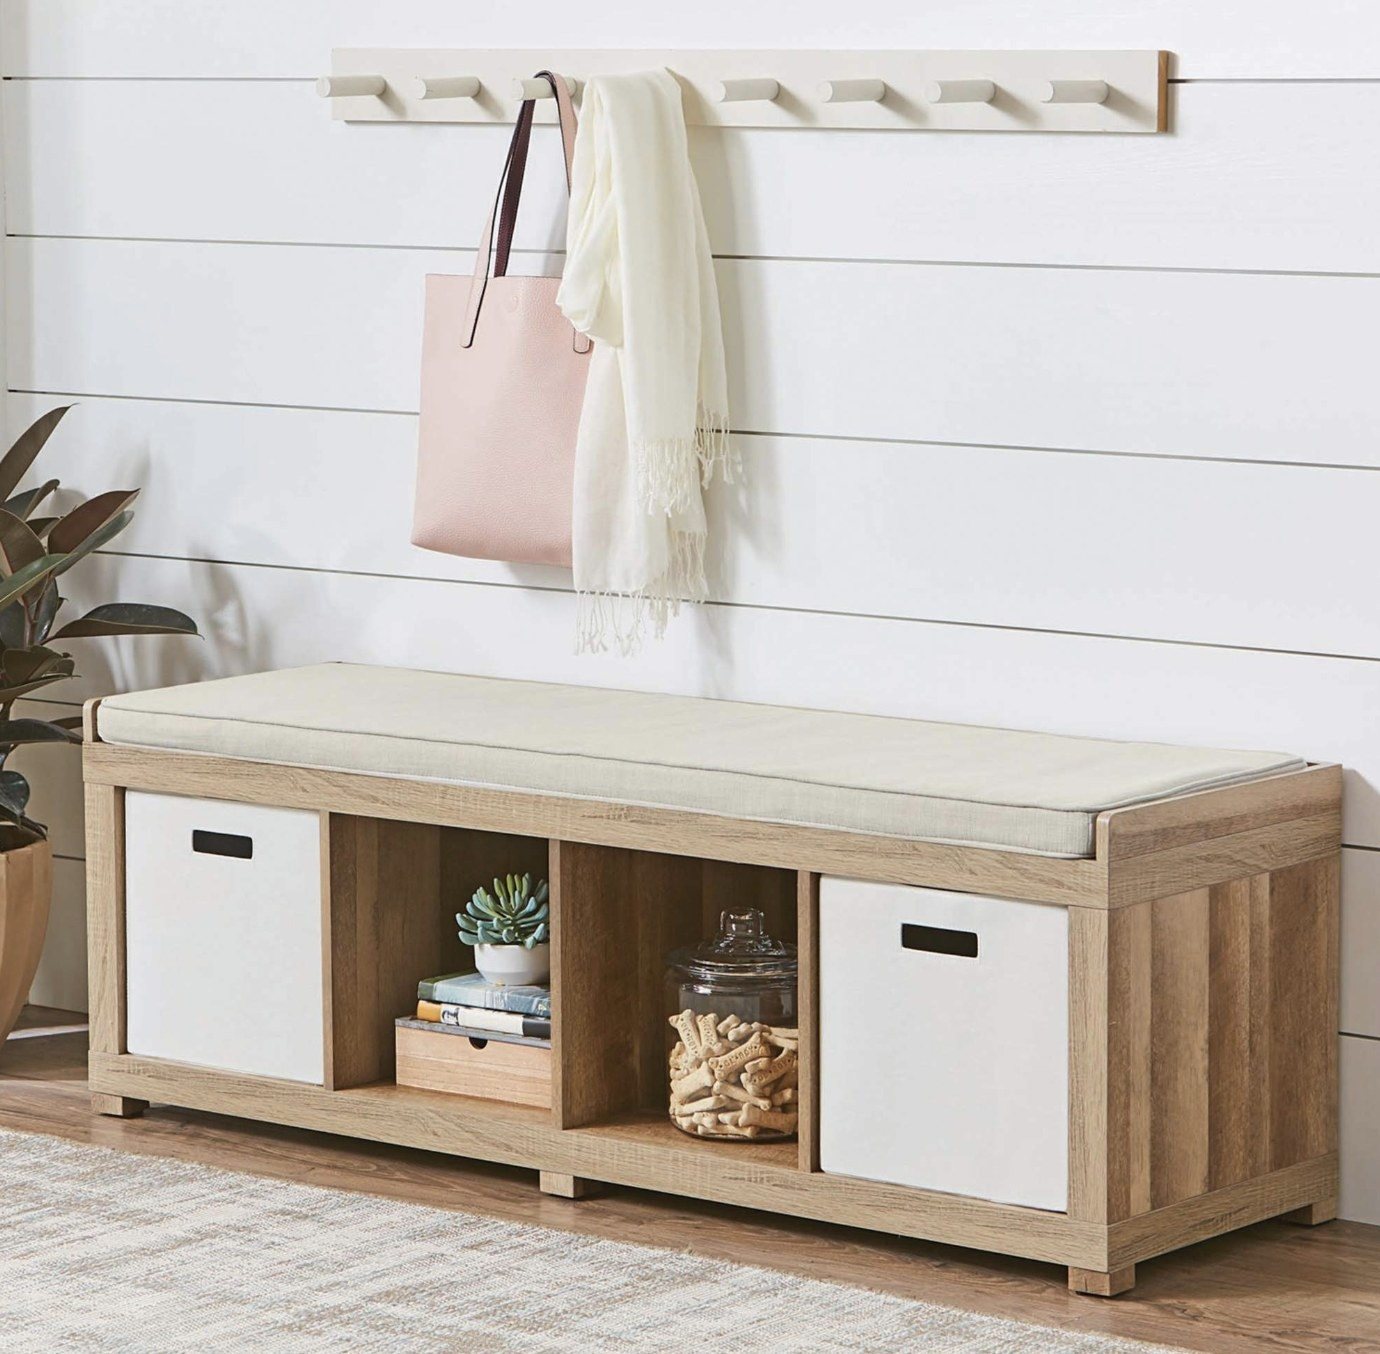 A cream and light wood bench with storage